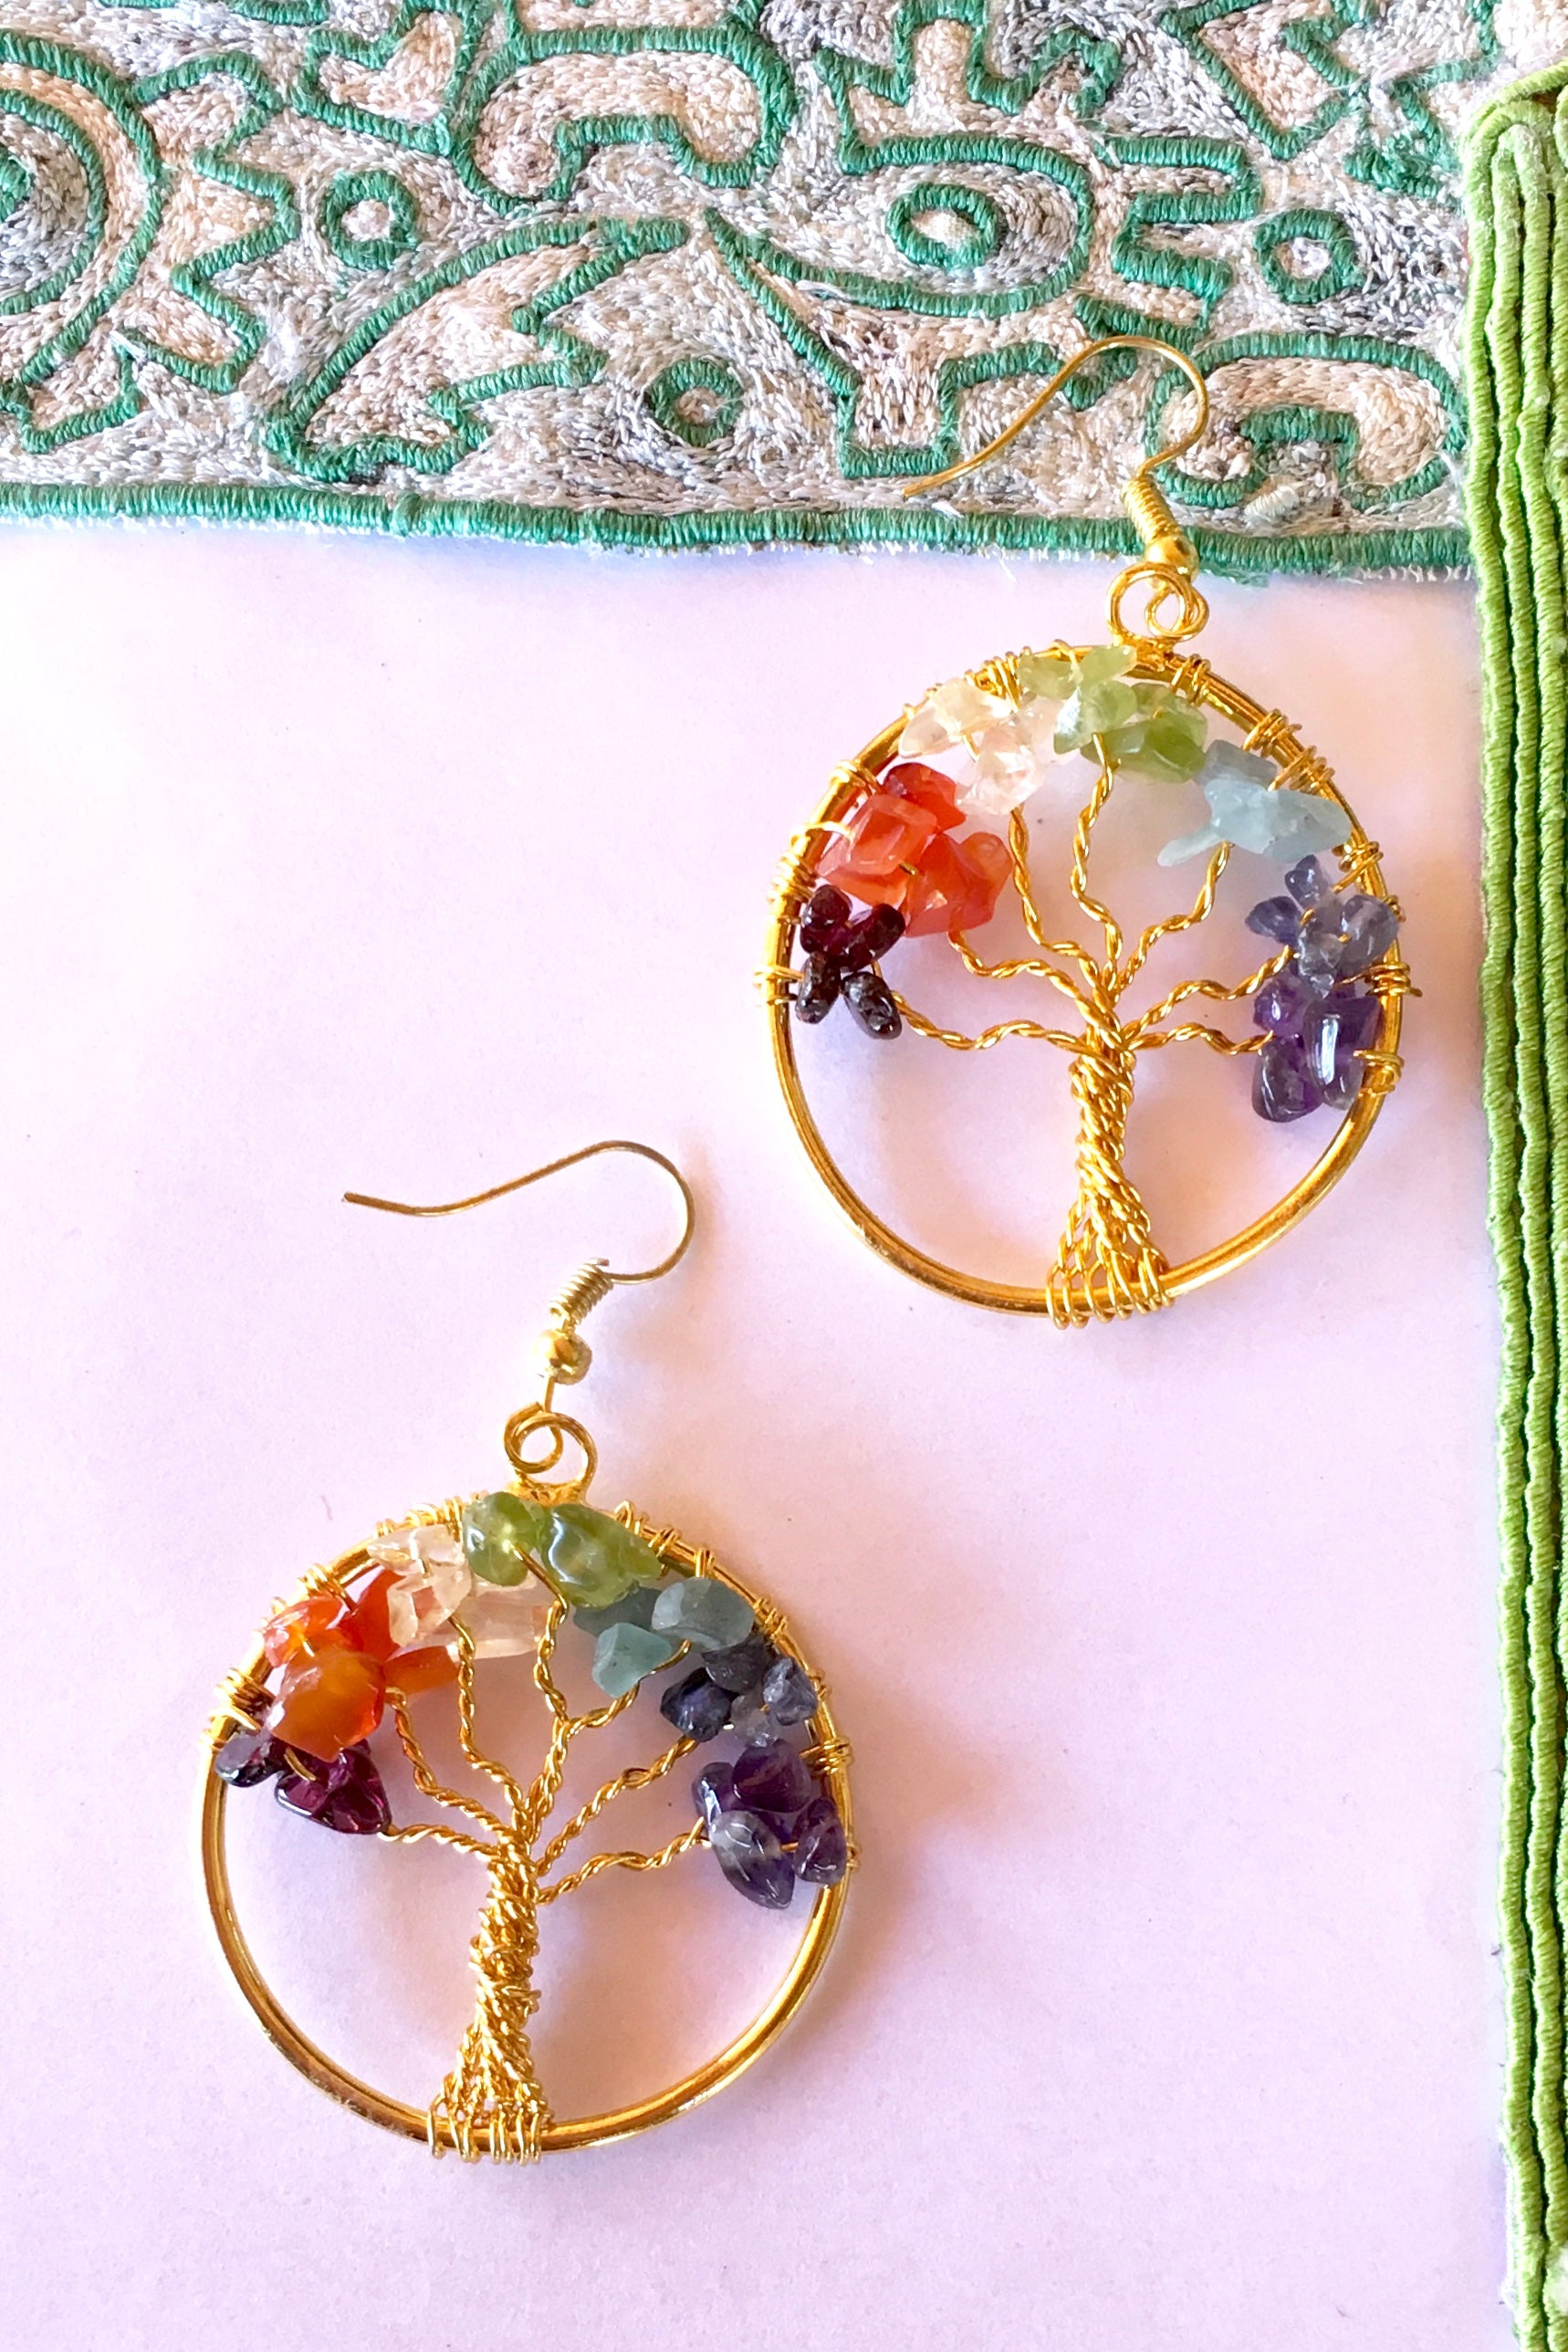 Earrings Tree of Life with gemstone detail, hippie style earrings.